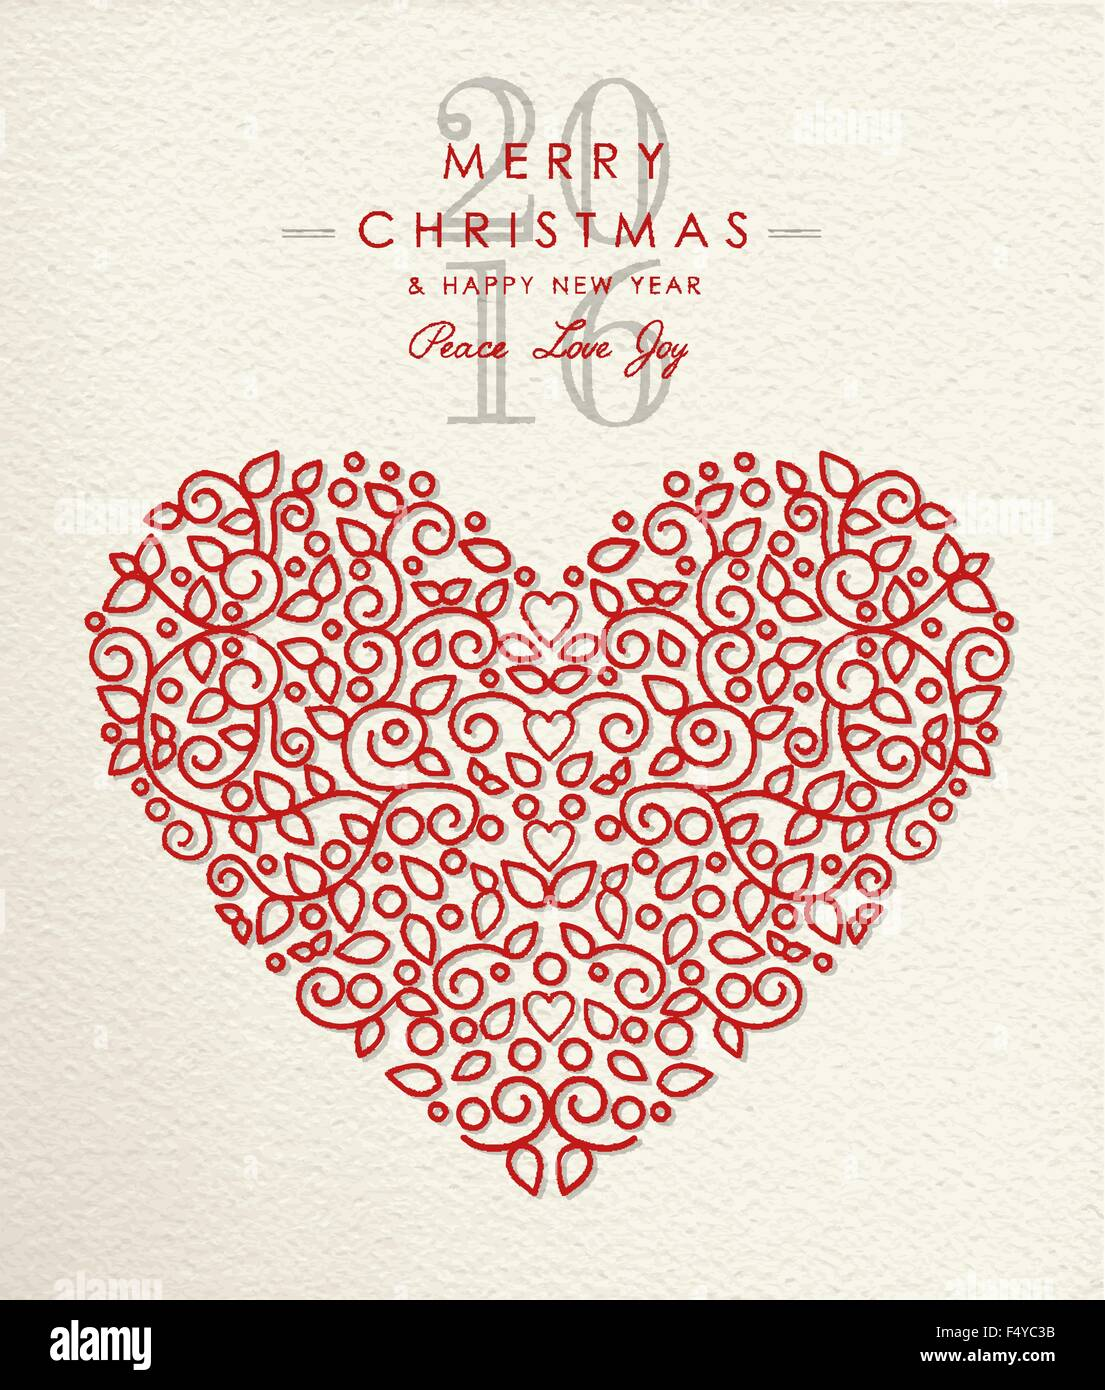 Merry Christmas Happy New Year 2016 Heart Shape In Ornament Outline